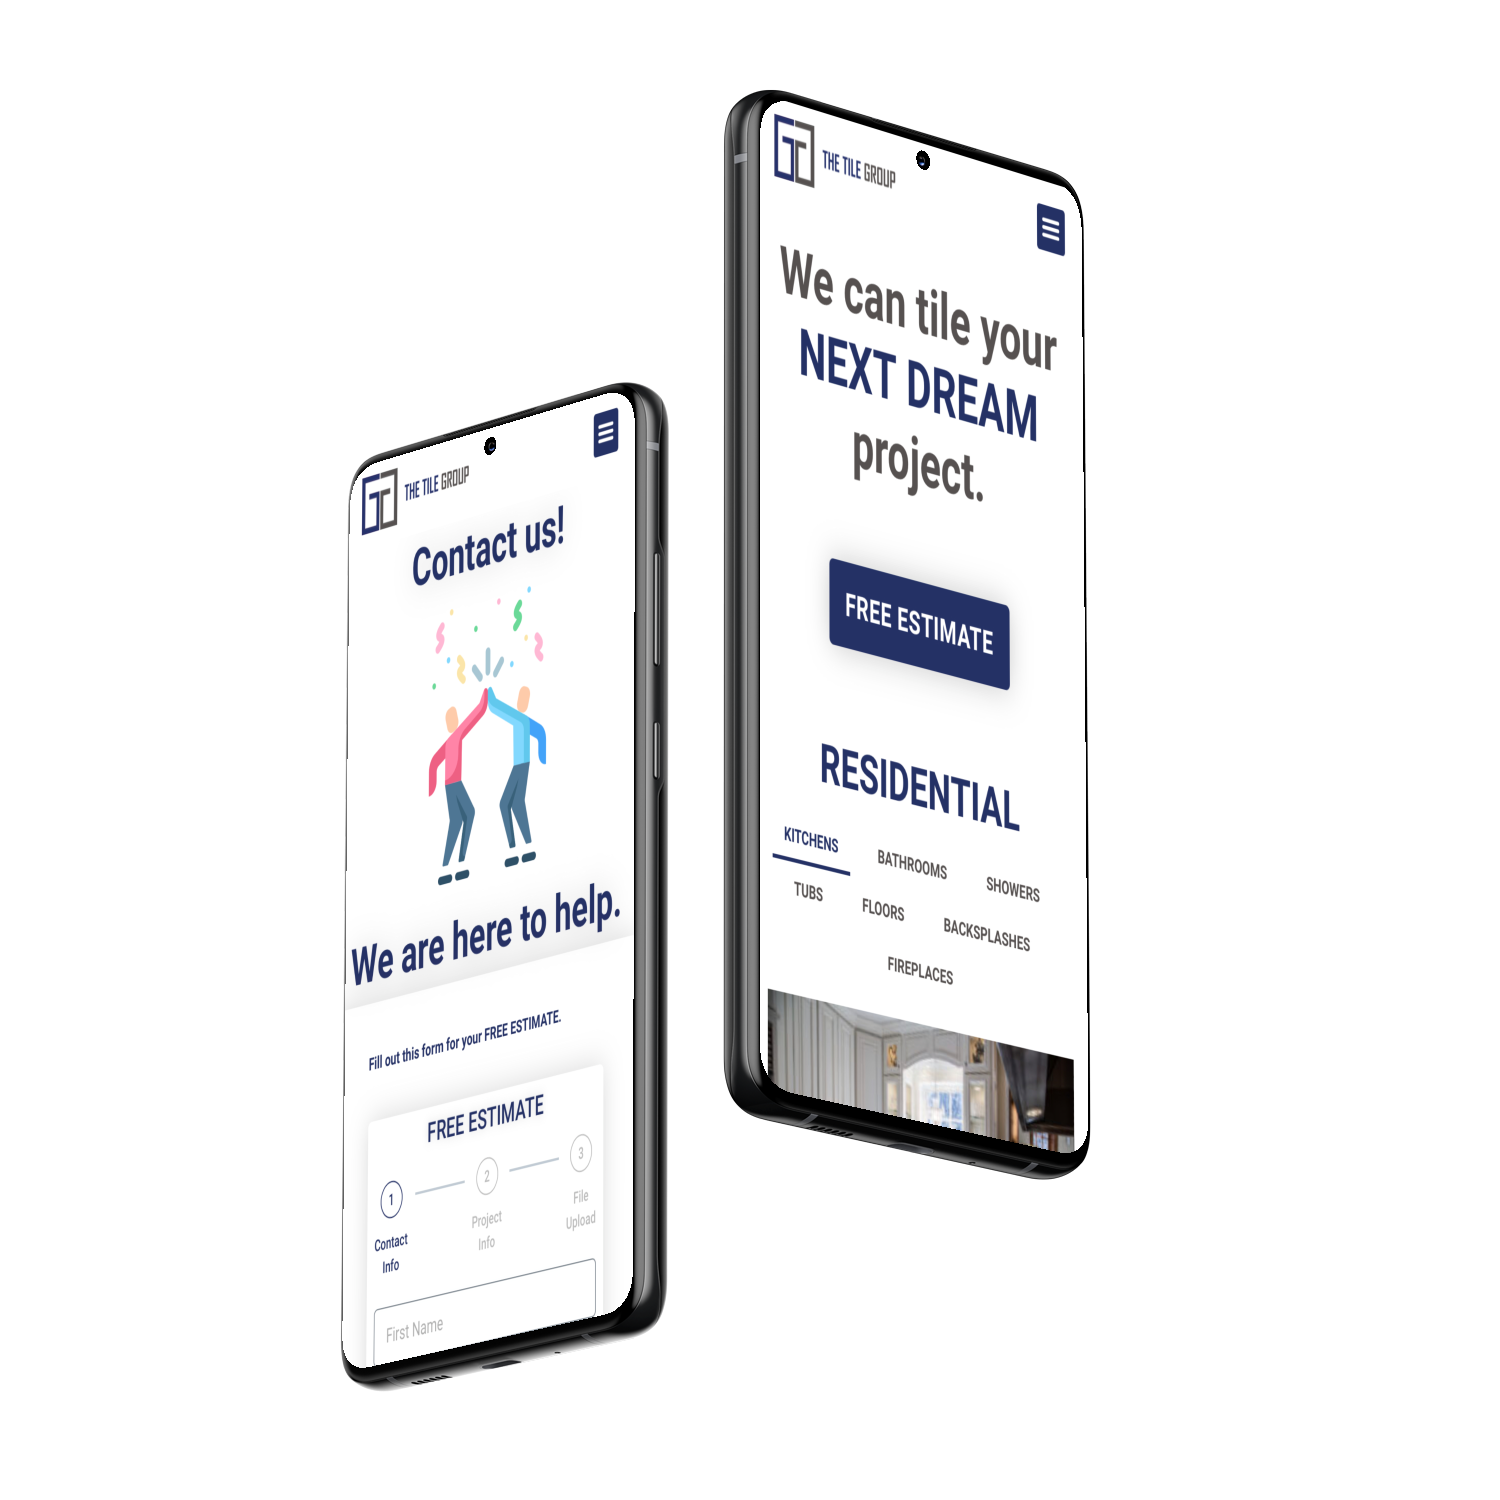 Mobile Contact page and Project page for The Tile Group website.